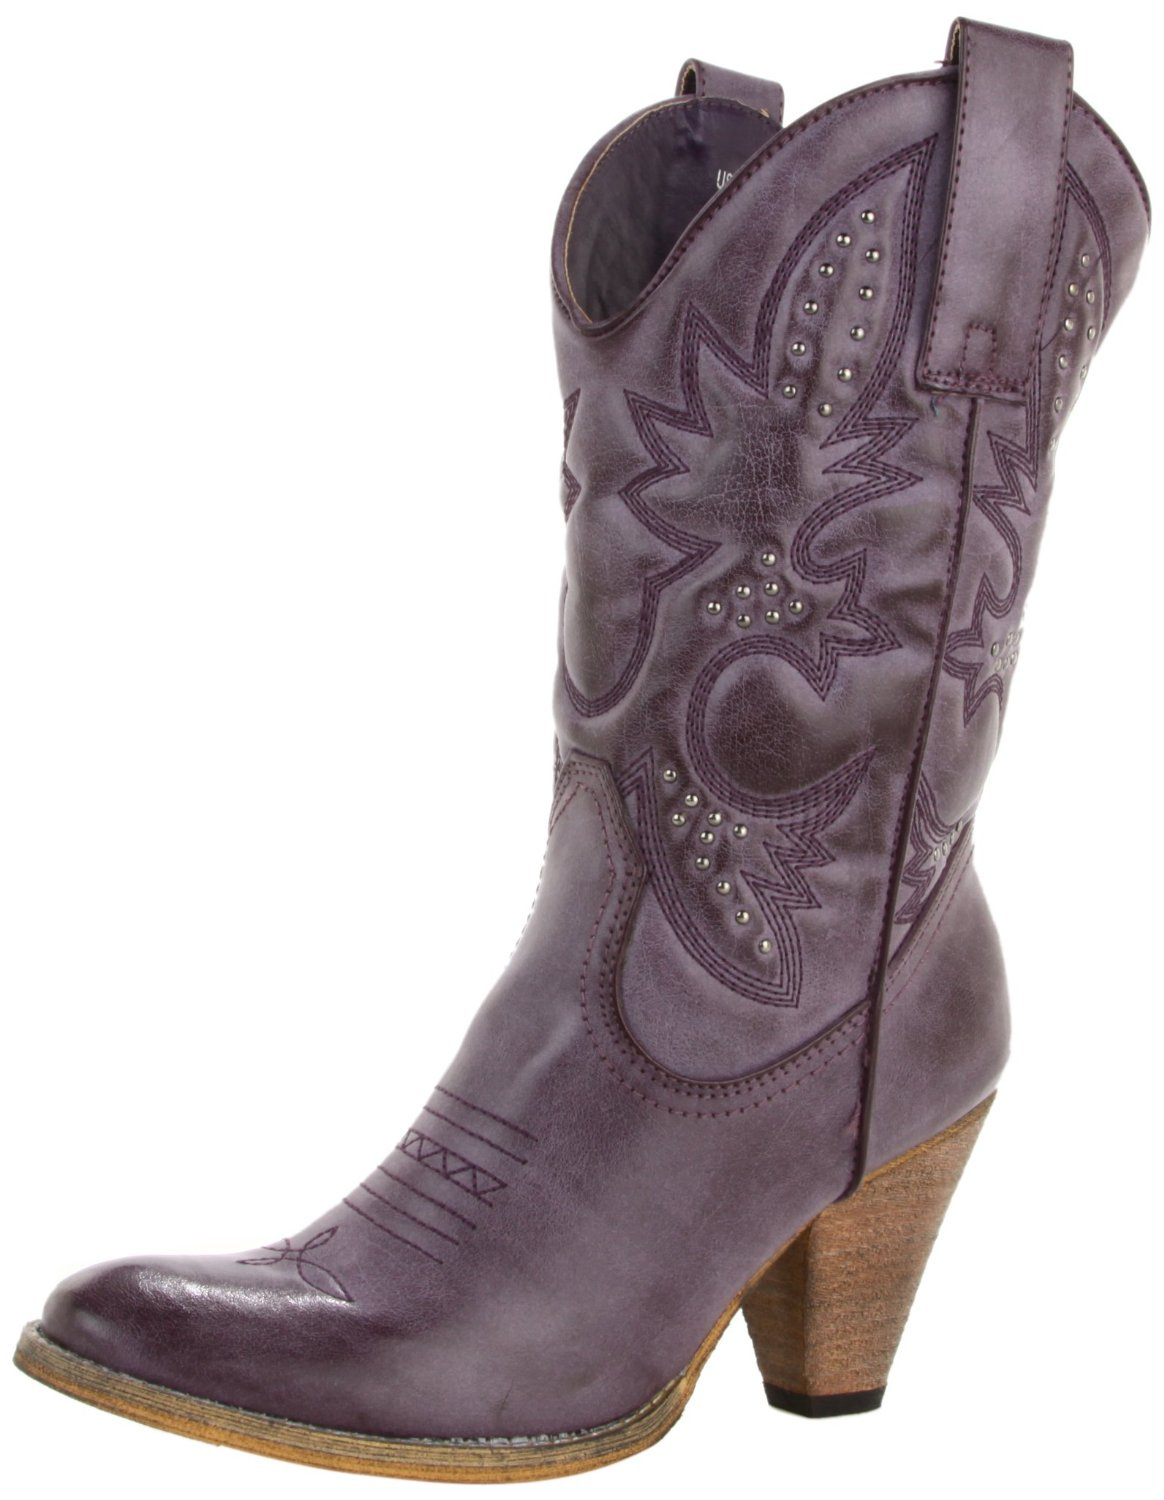 Women's western cowboy boots / cowgirl boots 2017